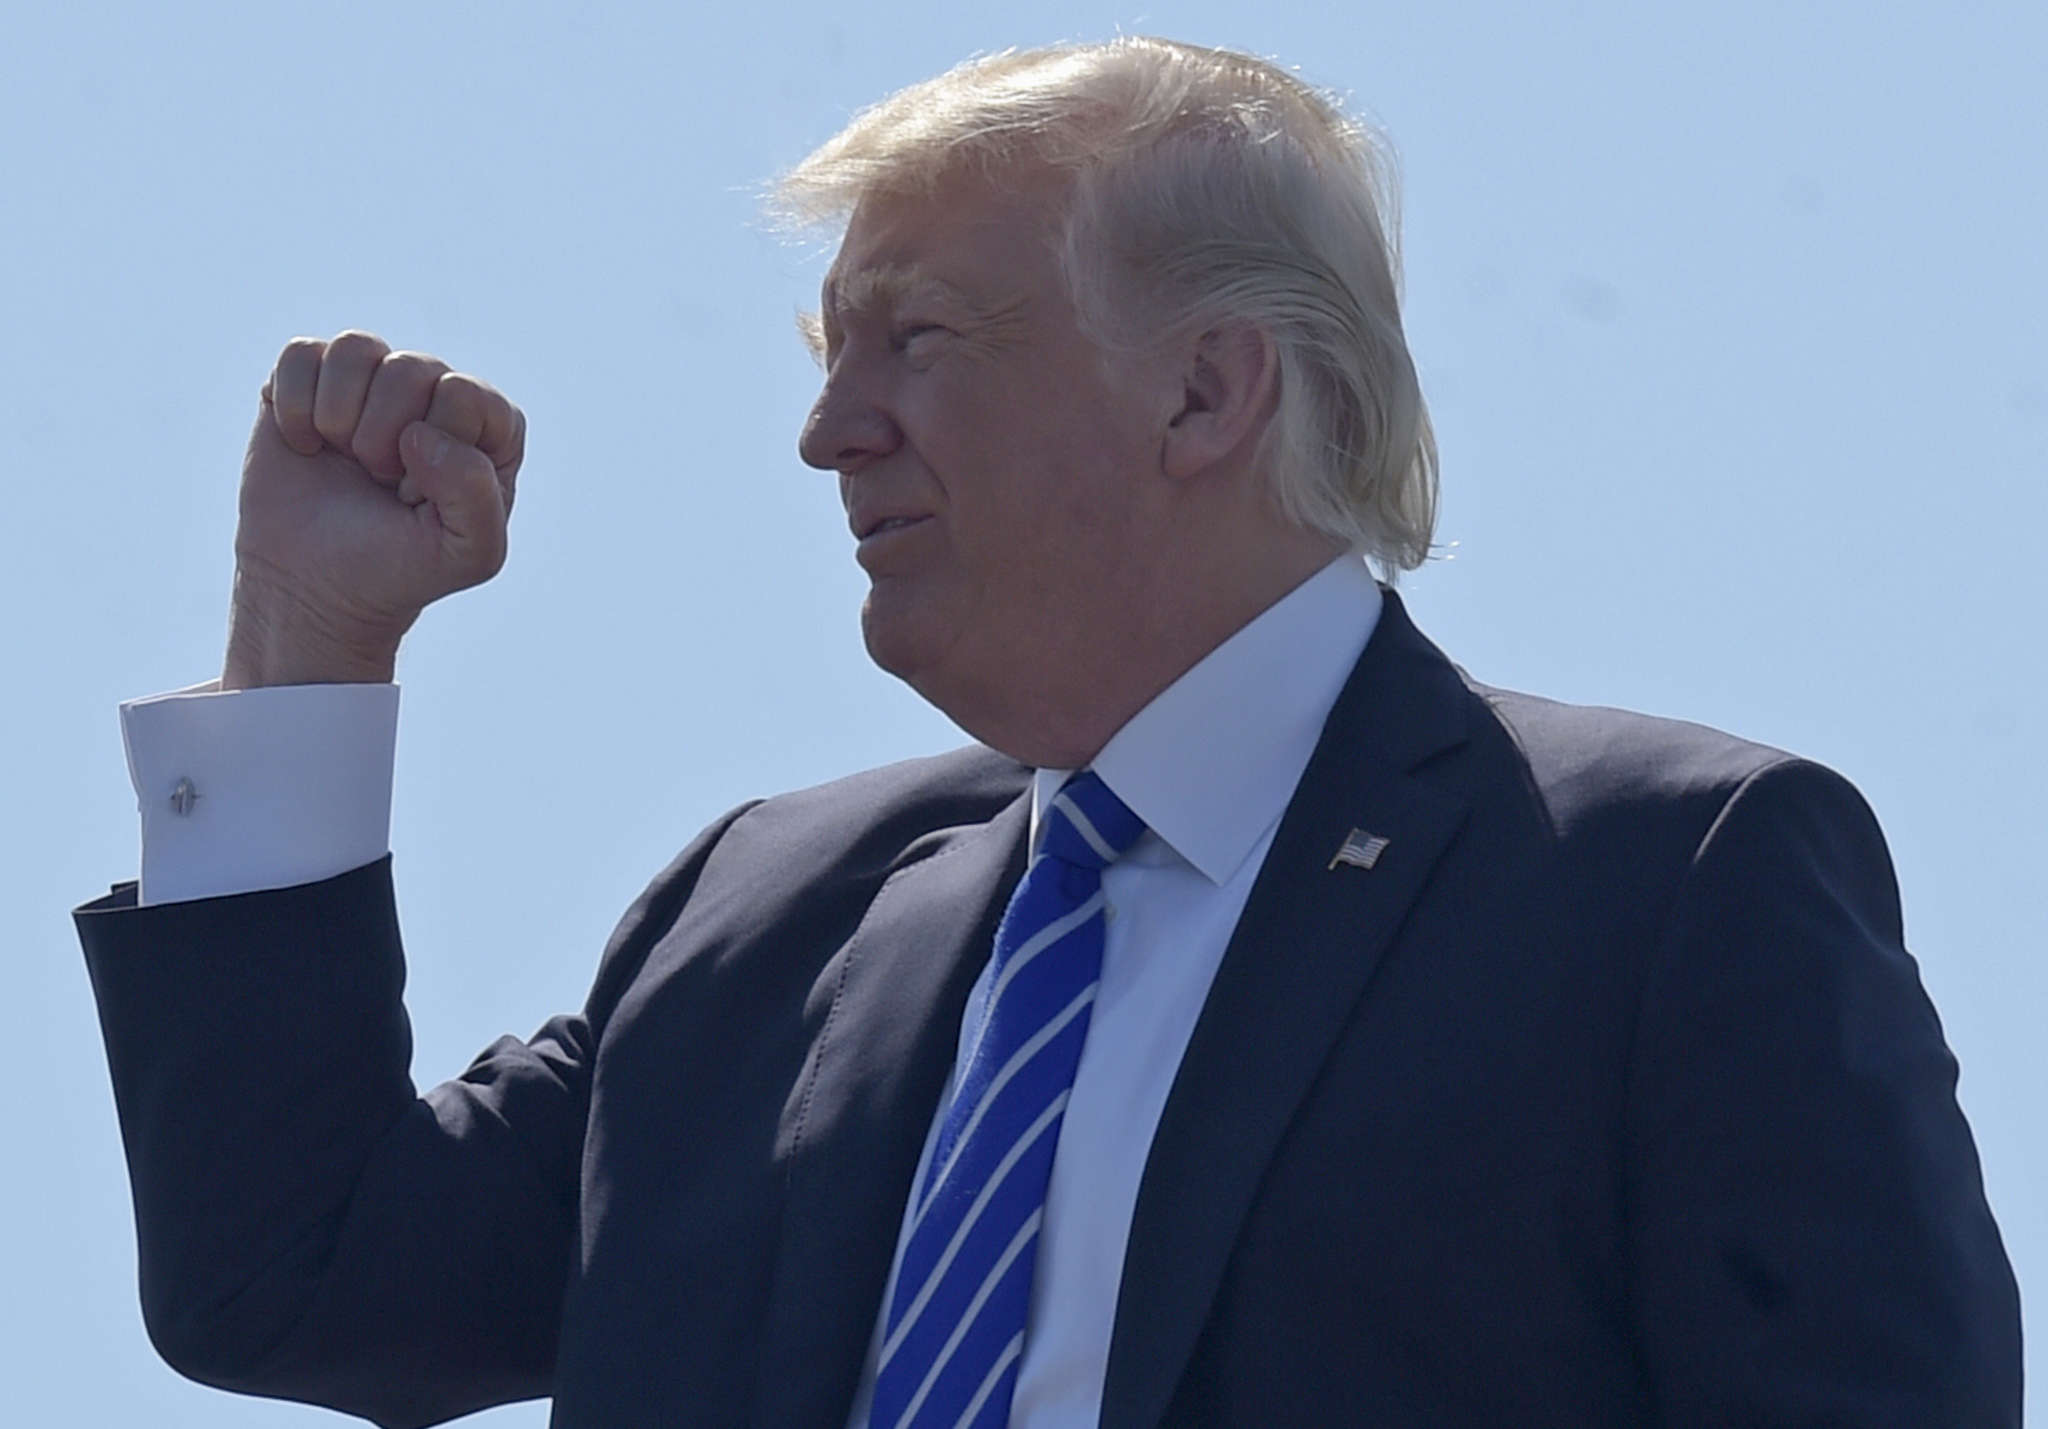 President Trump gestures at Groton-New London Airport in Connecticut, before giving the commencement address at the U.S. Coast Guard Academy on Wednesday.